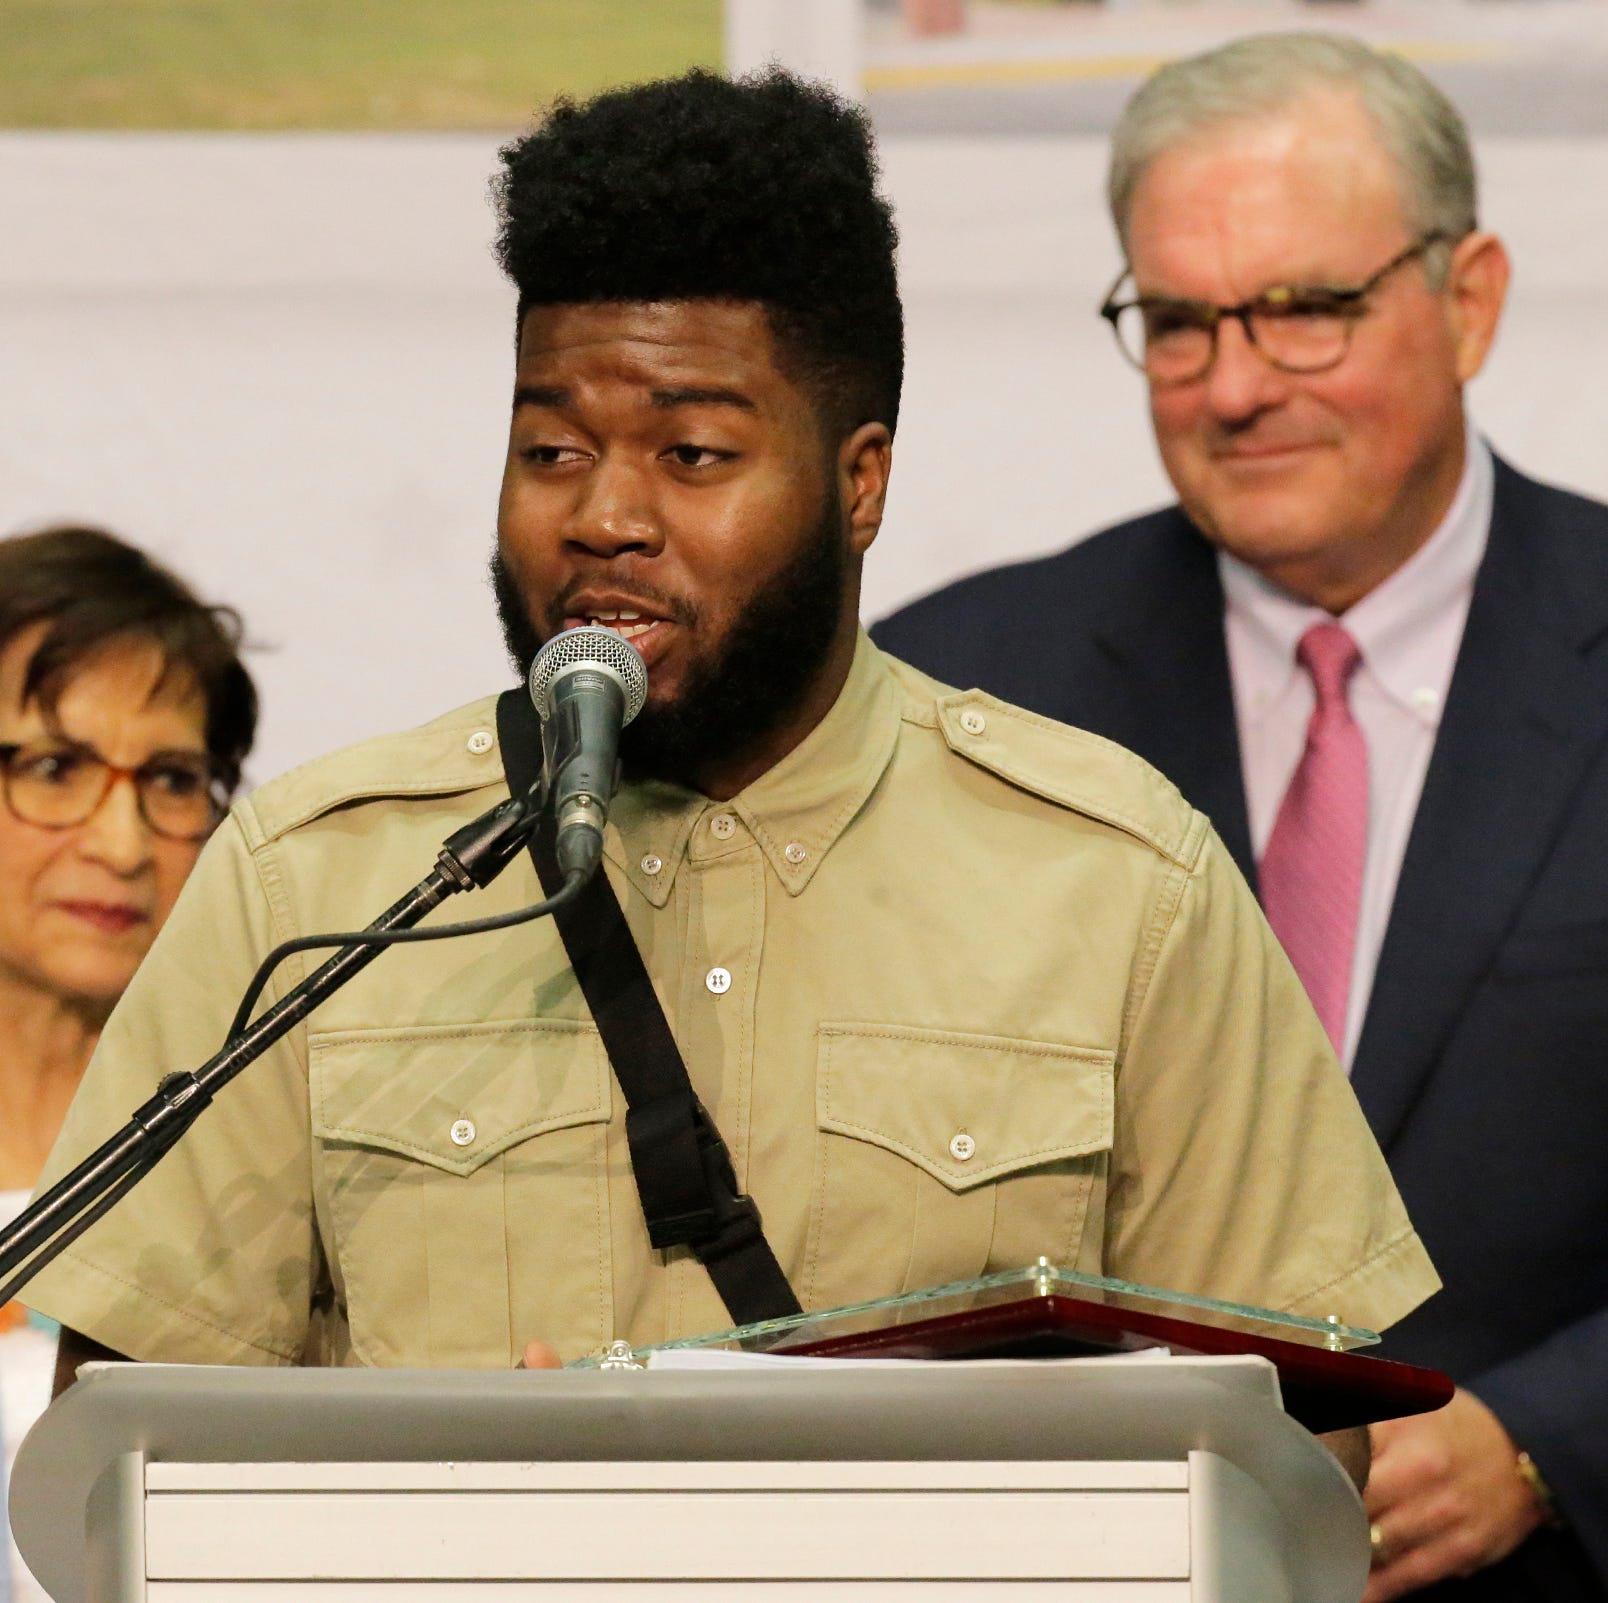 Khalid and El Paso: A love story